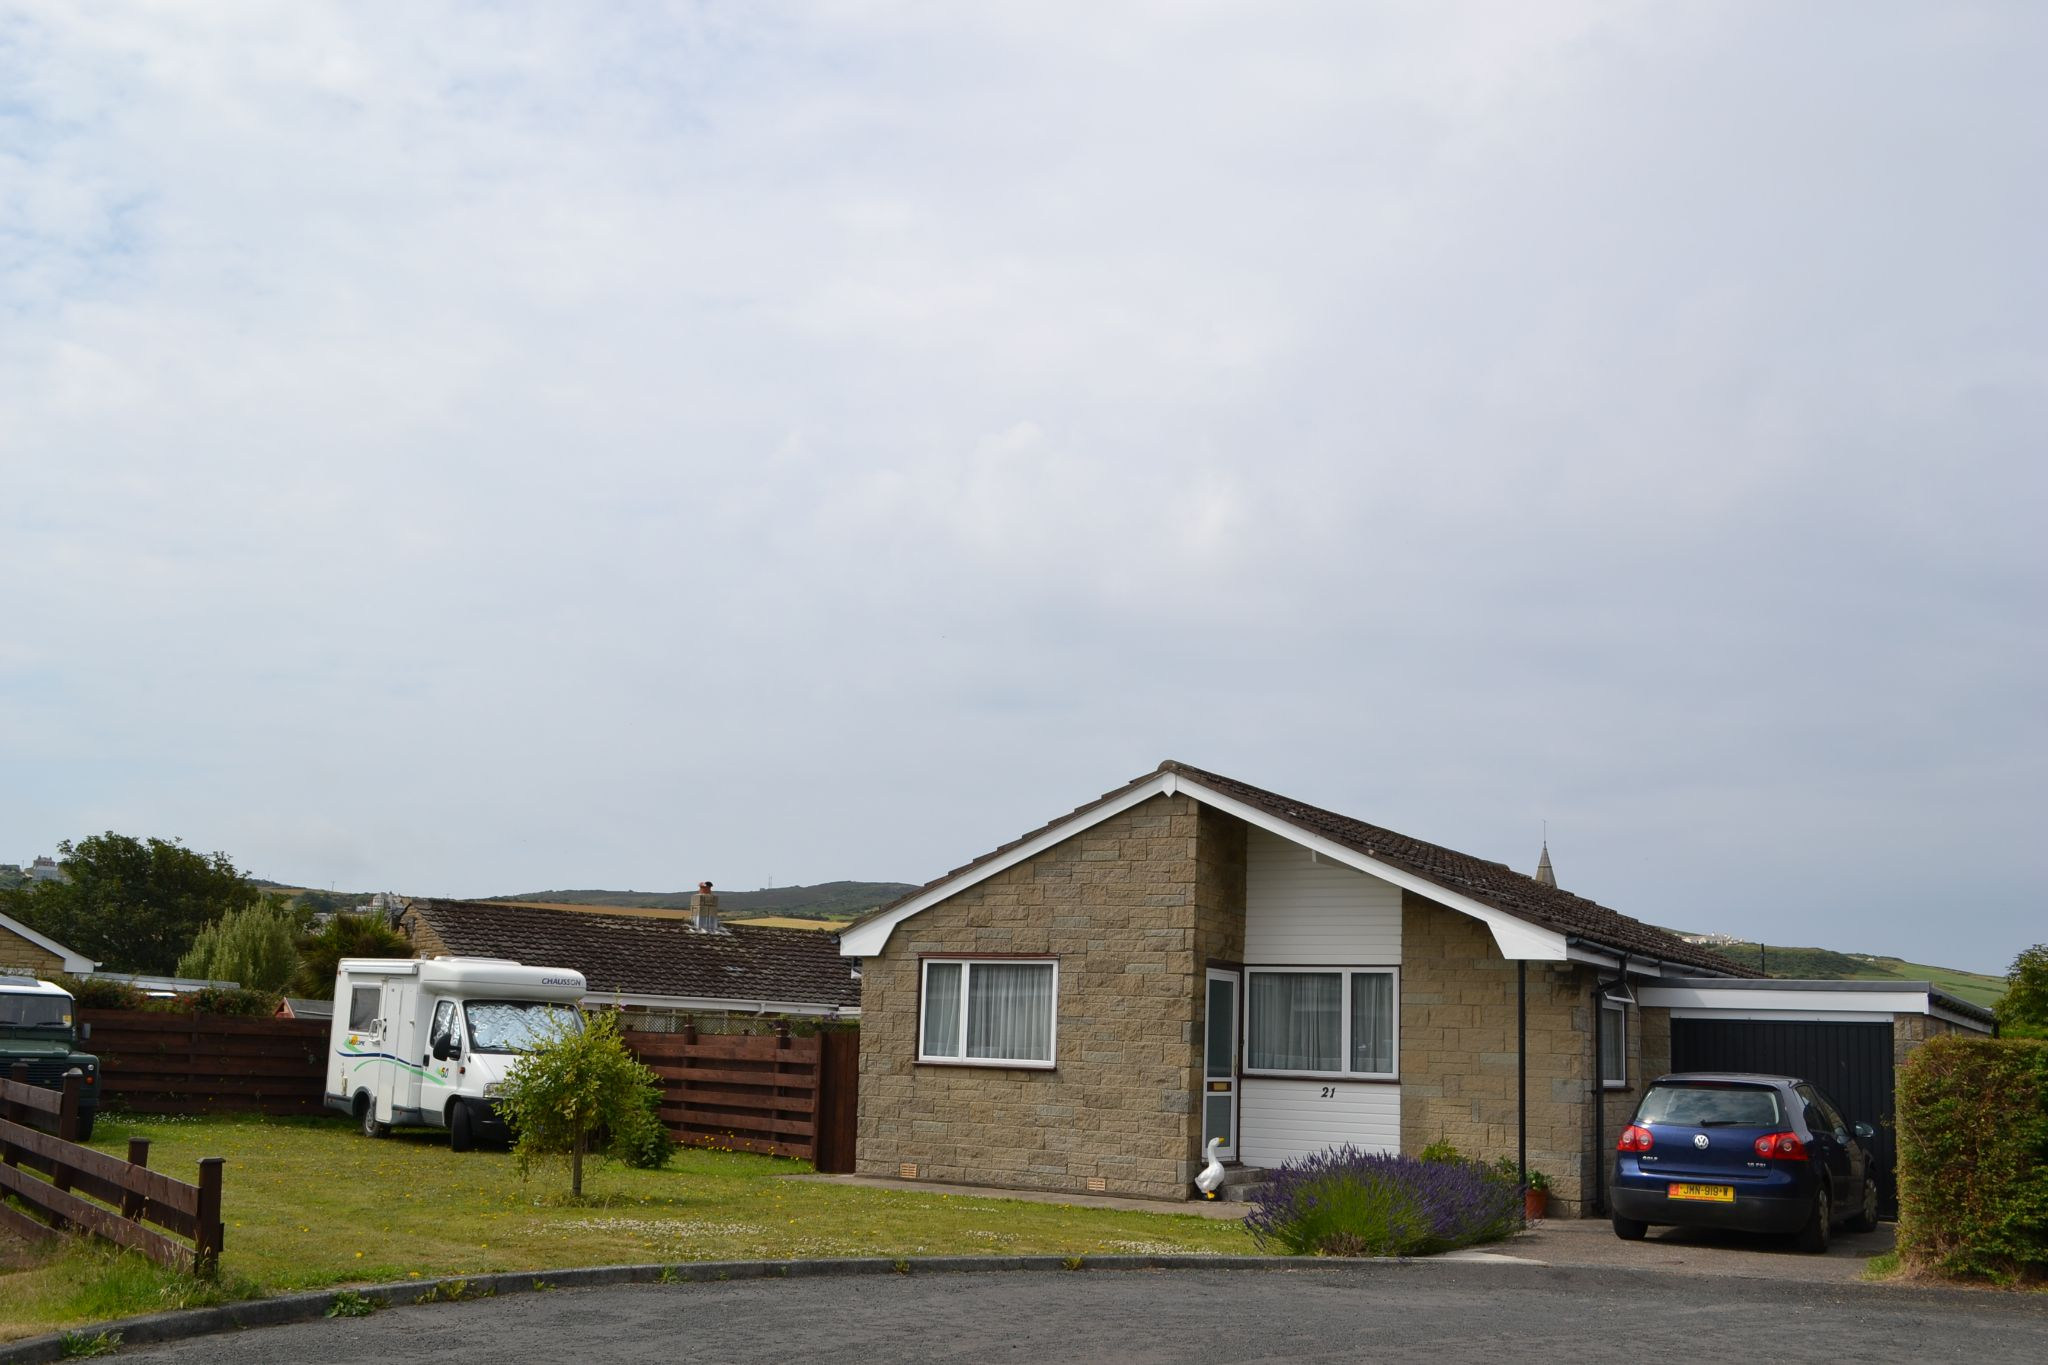 3 bedroom detached bungalow For Sale in Port Erin - Photograph 1